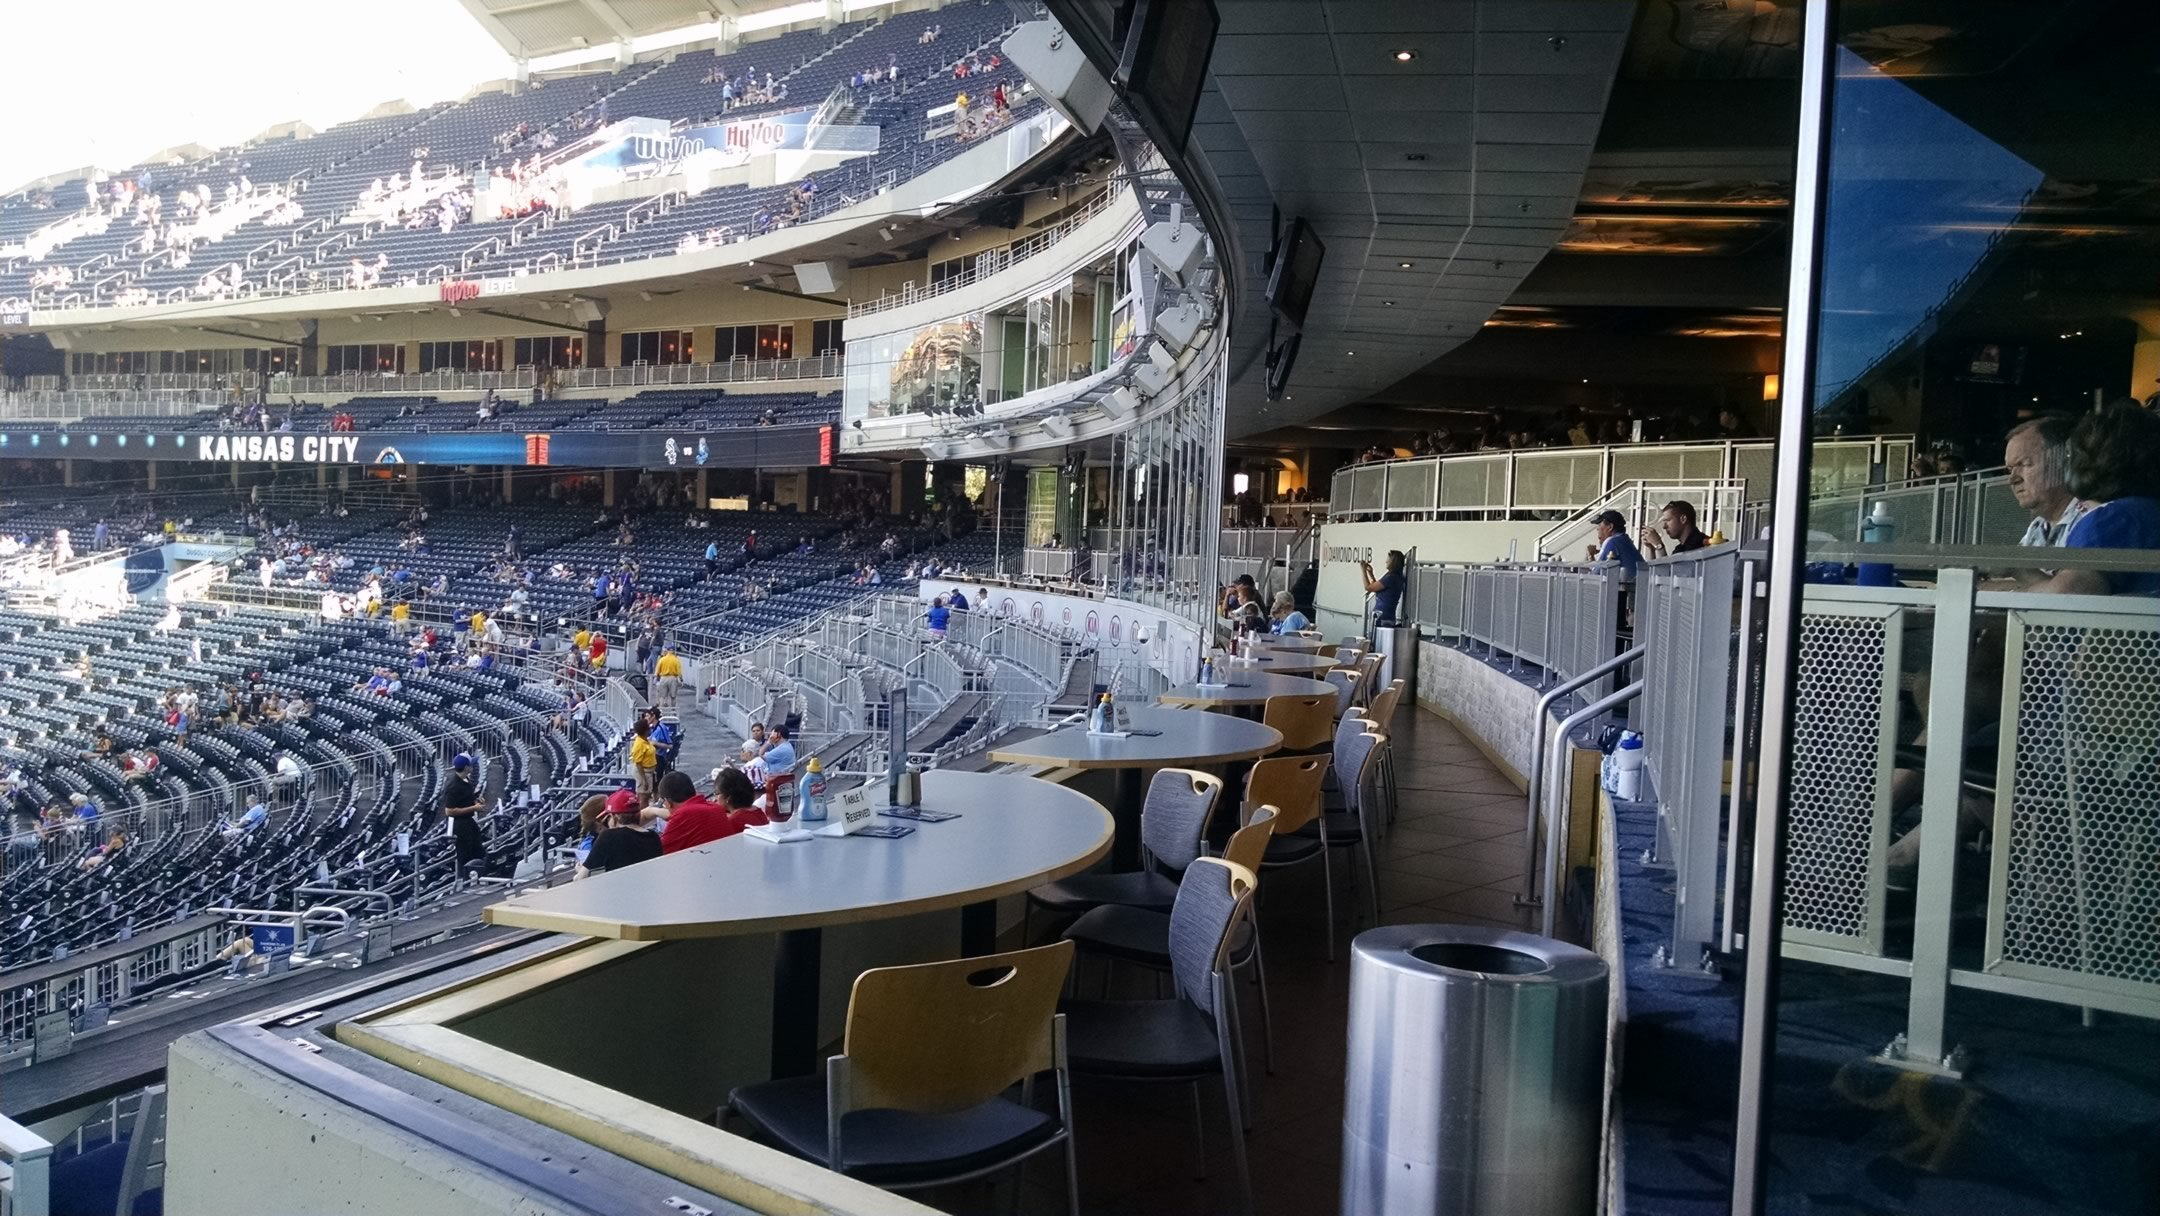 Dragonball Funny  ics Episode 4 together with Angel Stadium Of Anaheim further Angel Stadium Anaheim in addition Tour05 additionally Los Angeles Angels Of Anaheim. on anaheim stadium 3d seat …